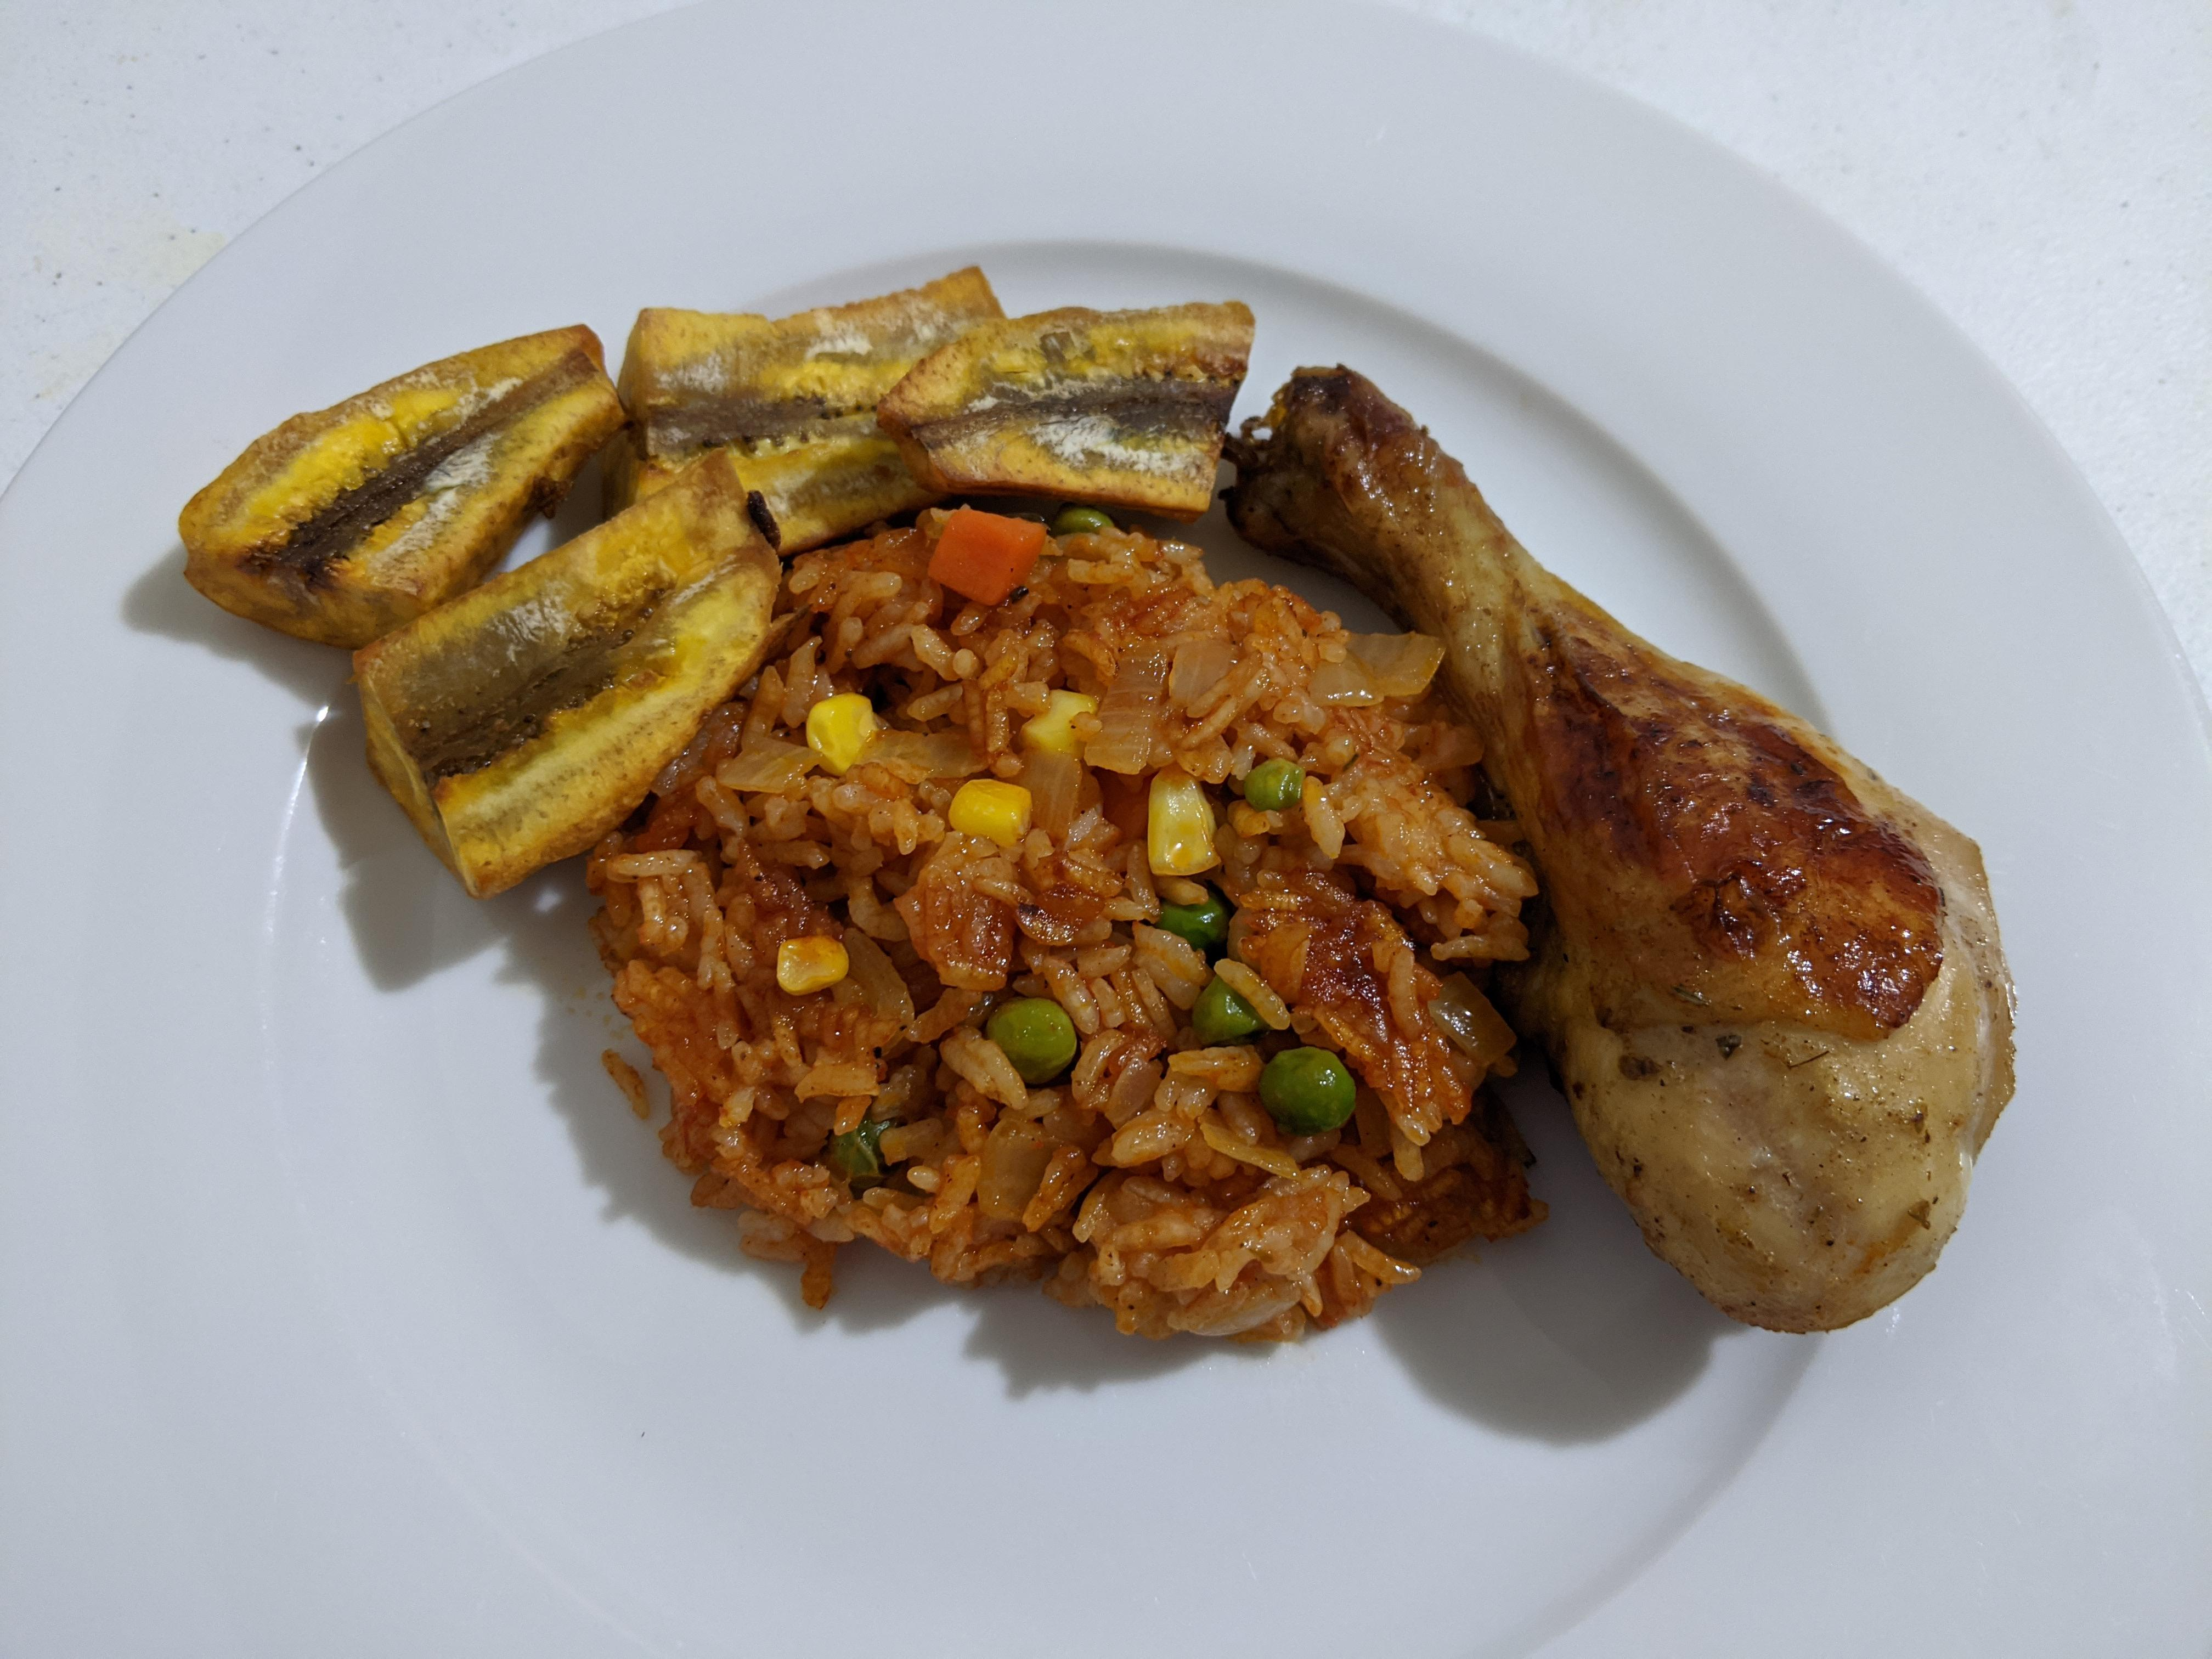 Nigerian Jollof Rice with Chicken and Fried Plantains